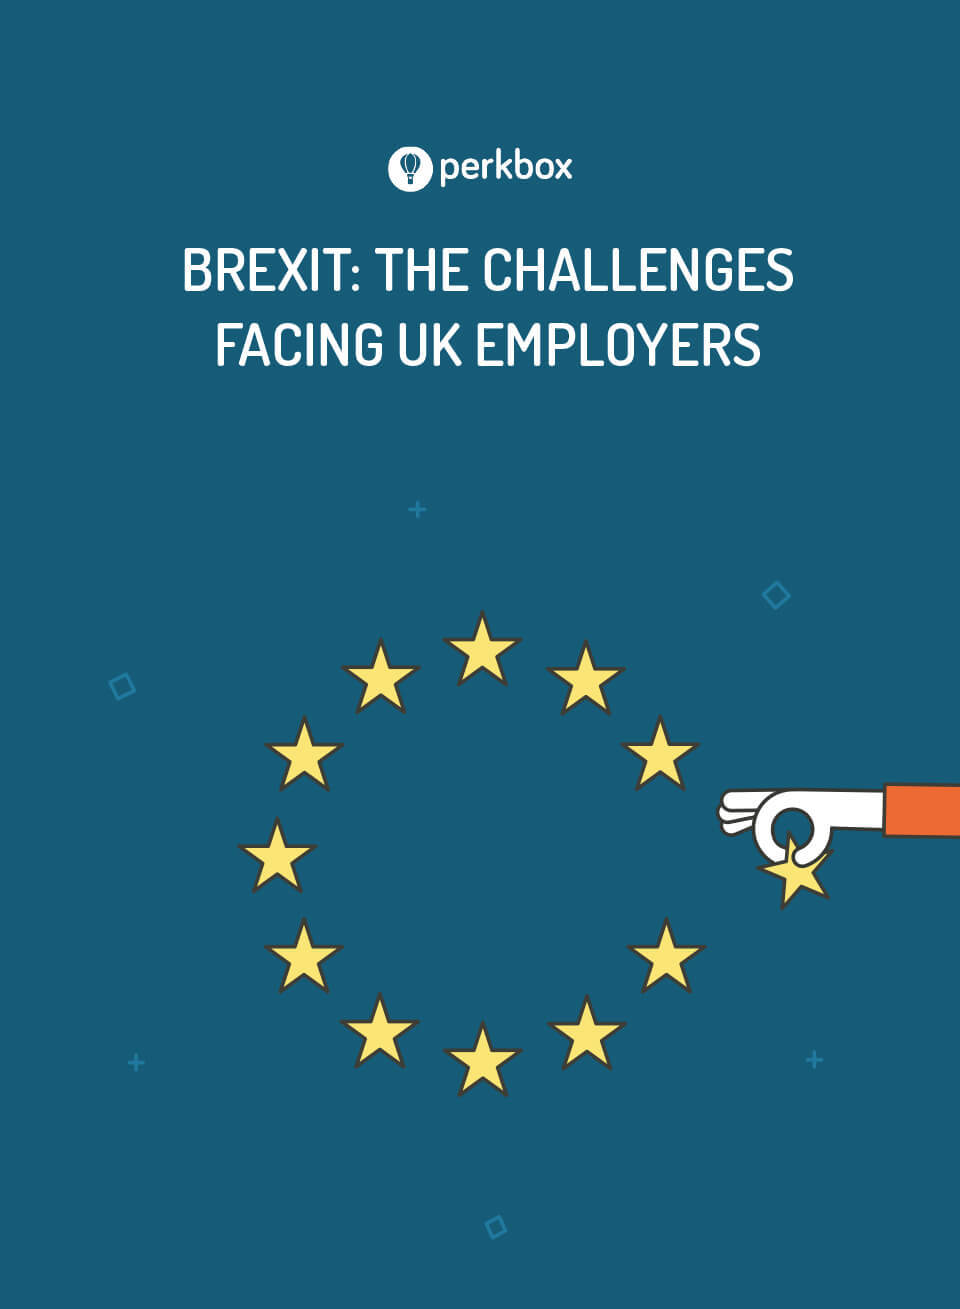 Brexit: The Challenges Facing UK Employers